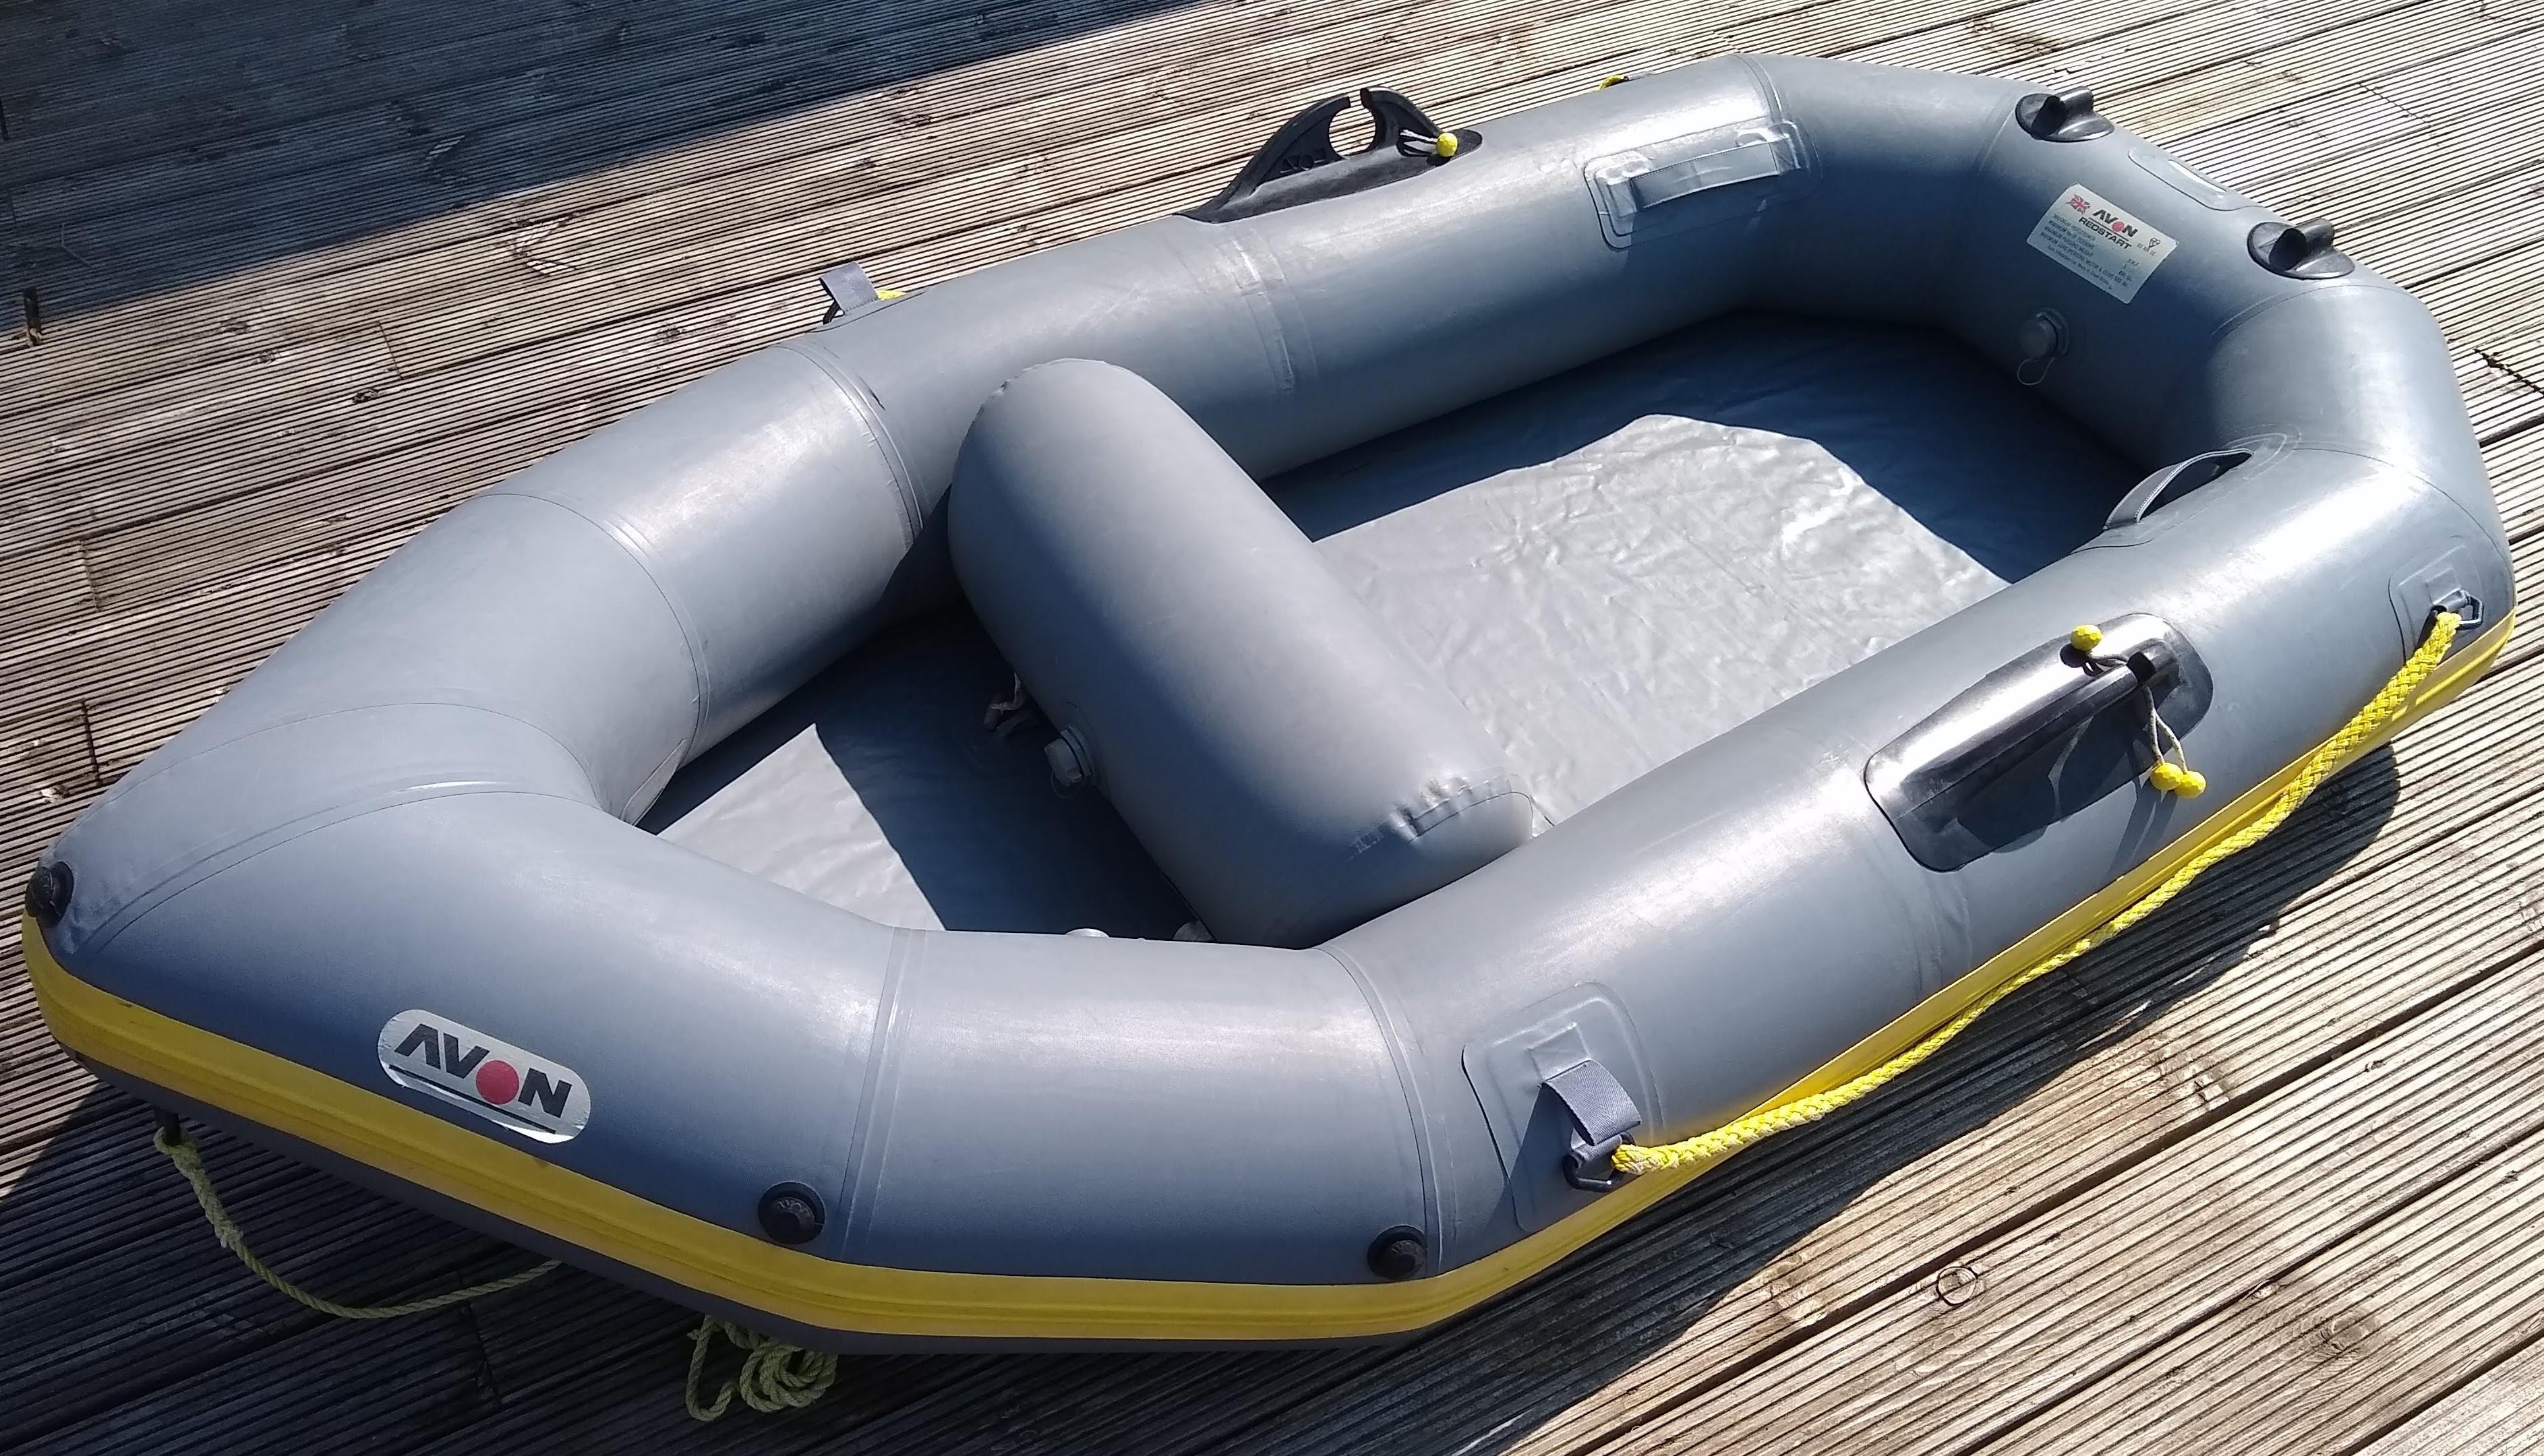 AVON REDSTART INFLATABLE DINGHY VGC in Totland Bay - Sold | Wightbay